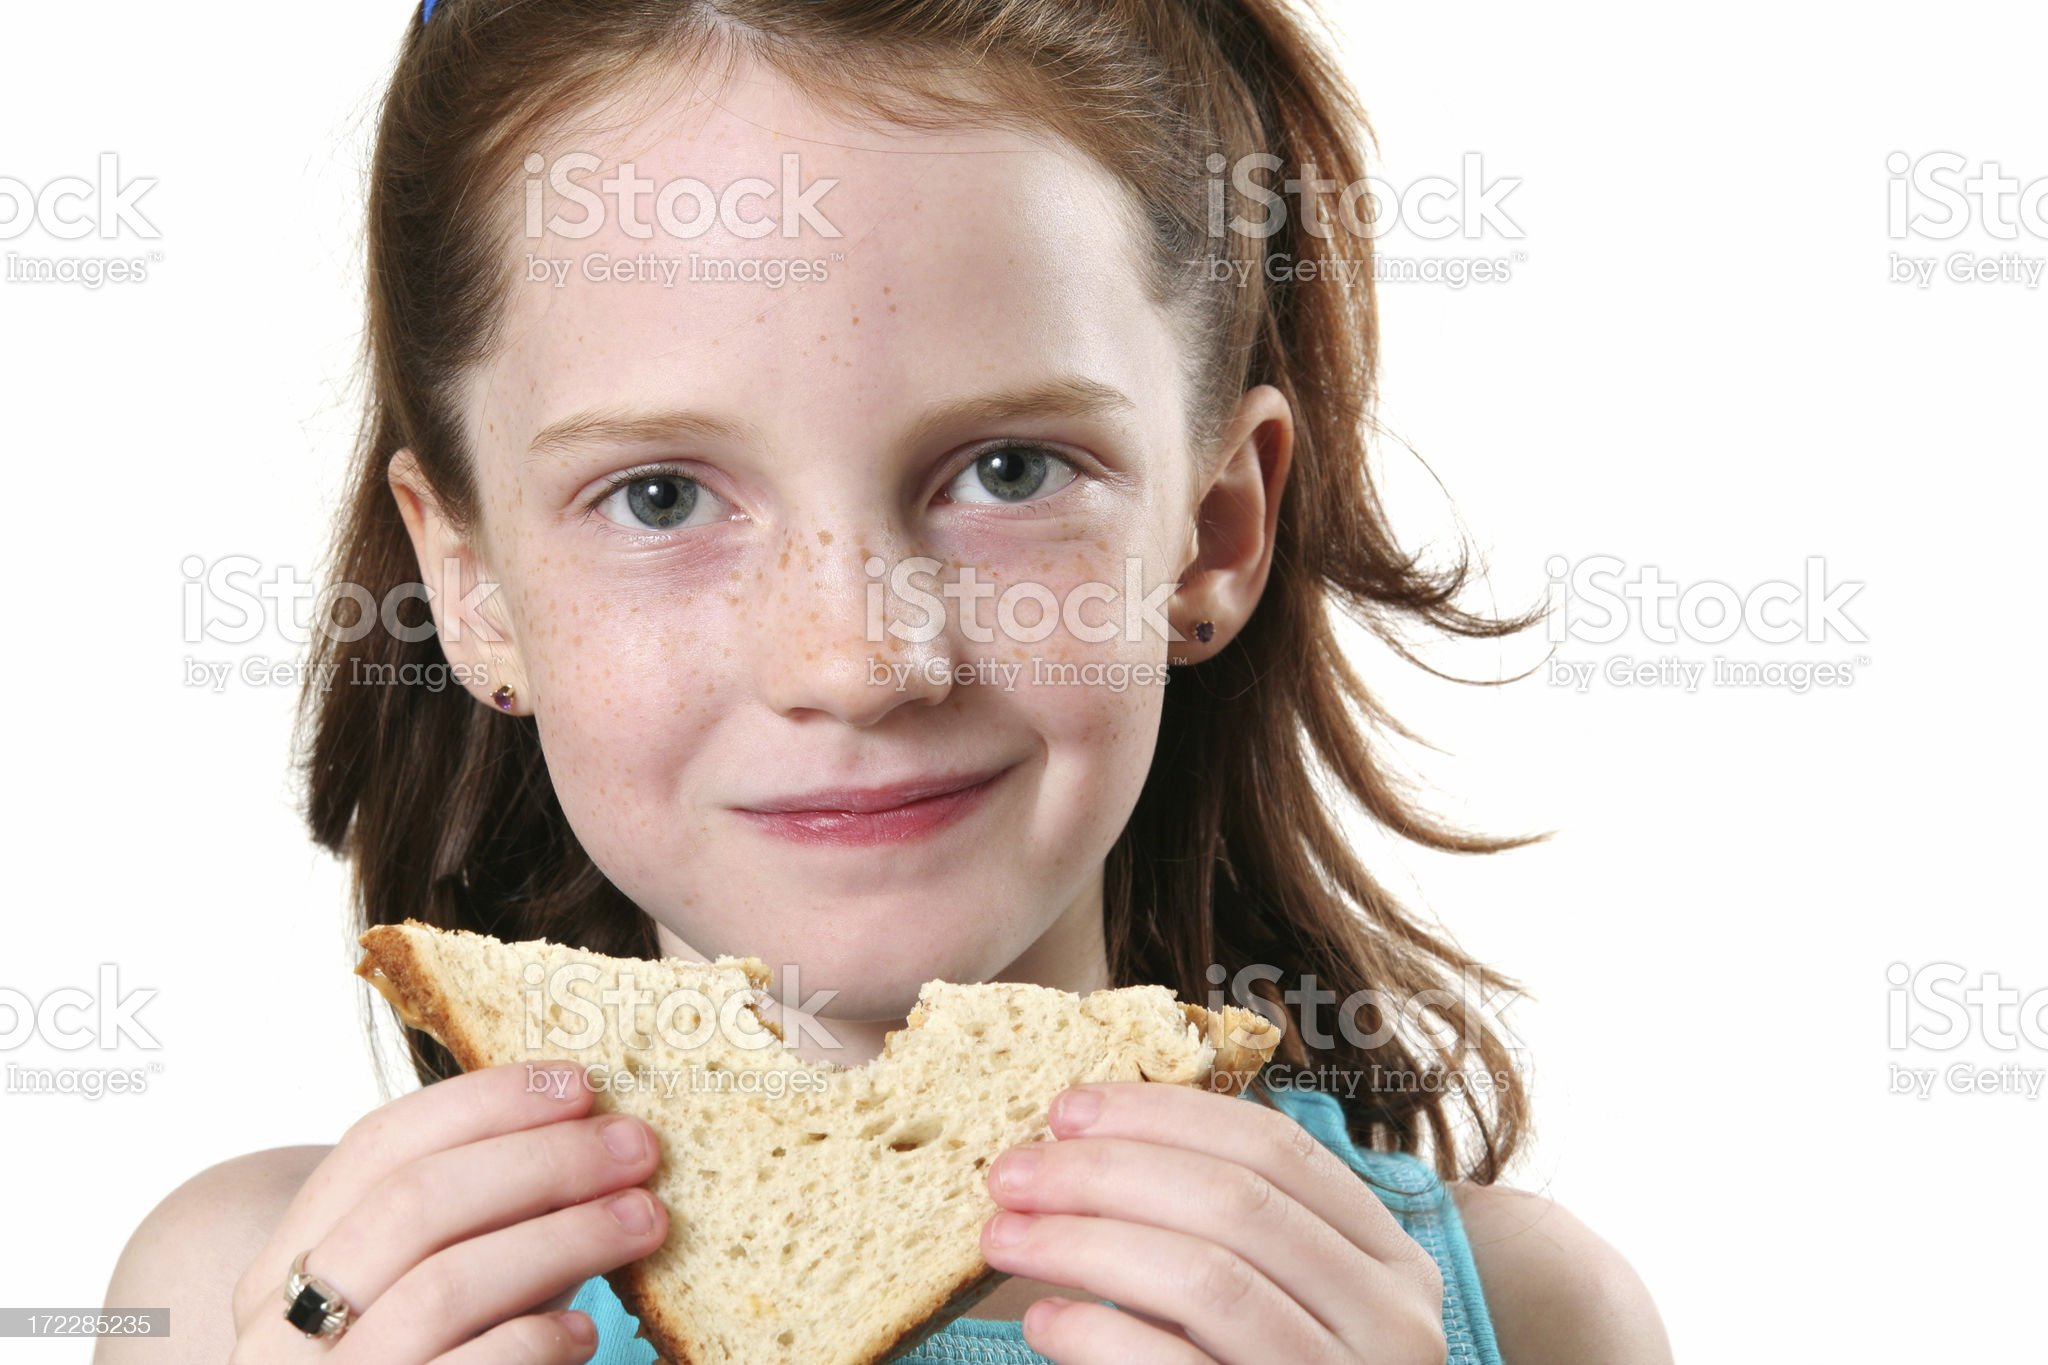 Girl and her Sandwich royalty-free stock photo